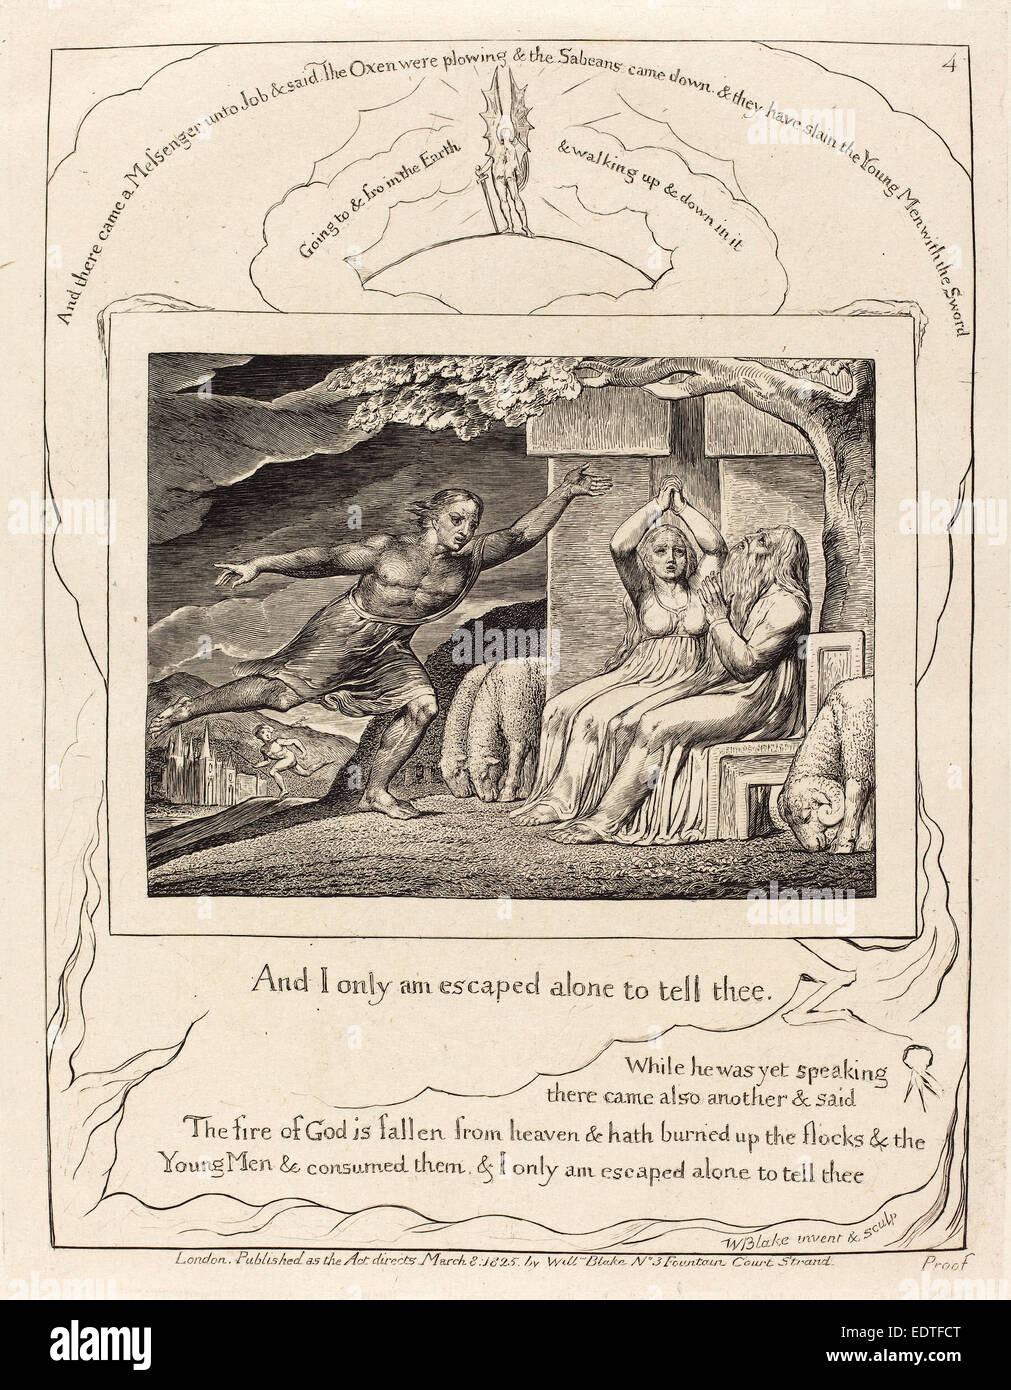 William Blake (British, 1757 - 1827), The Messengers Tell Job of His Misfortunes, 1825, engraving on India paper - Stock Image